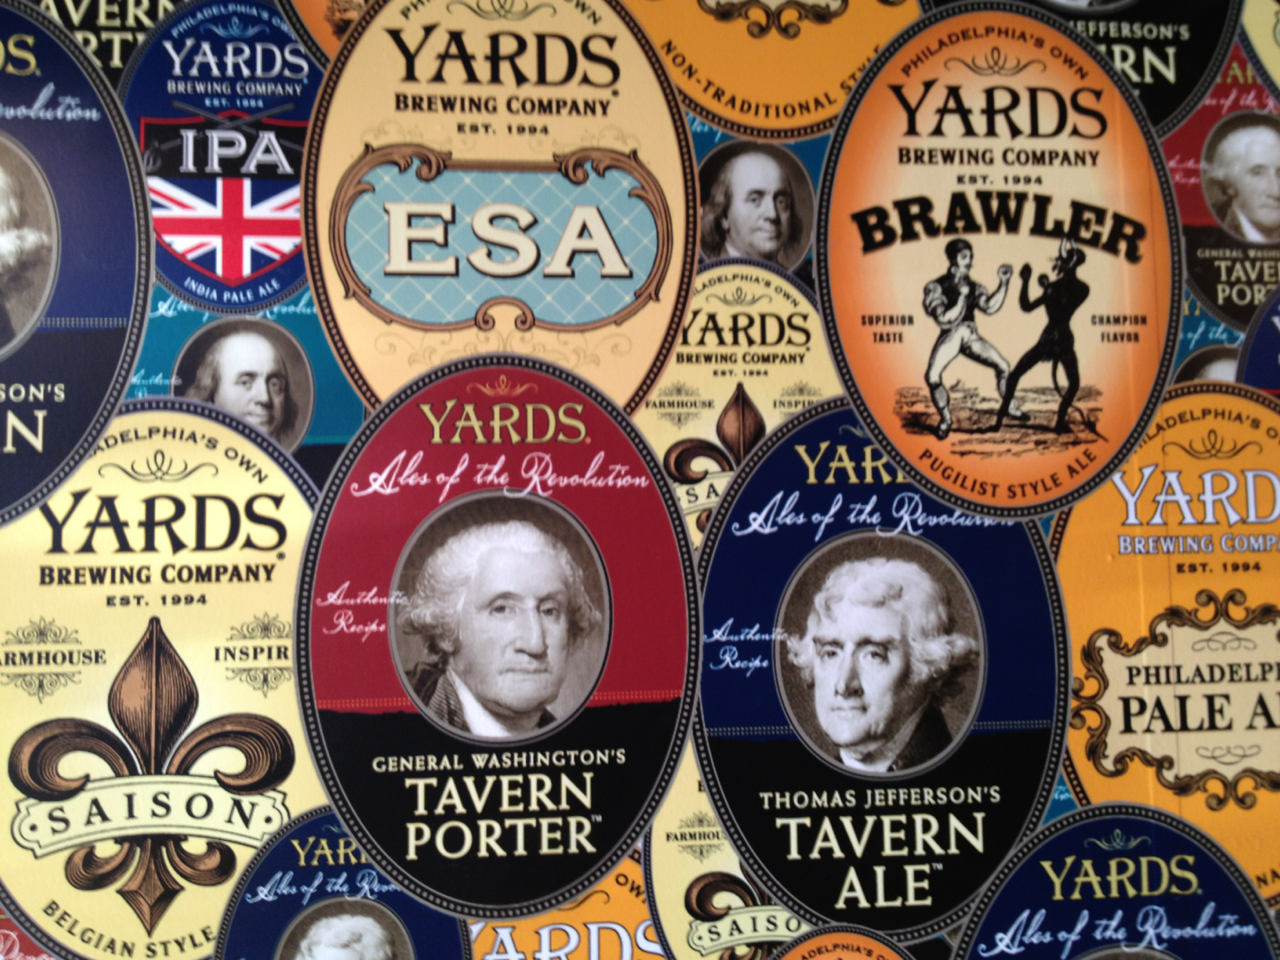 Yards Brewing Company, where we tasted the beers George Washington, Ben Franklin, and Thomas Jefferson would have drunk.